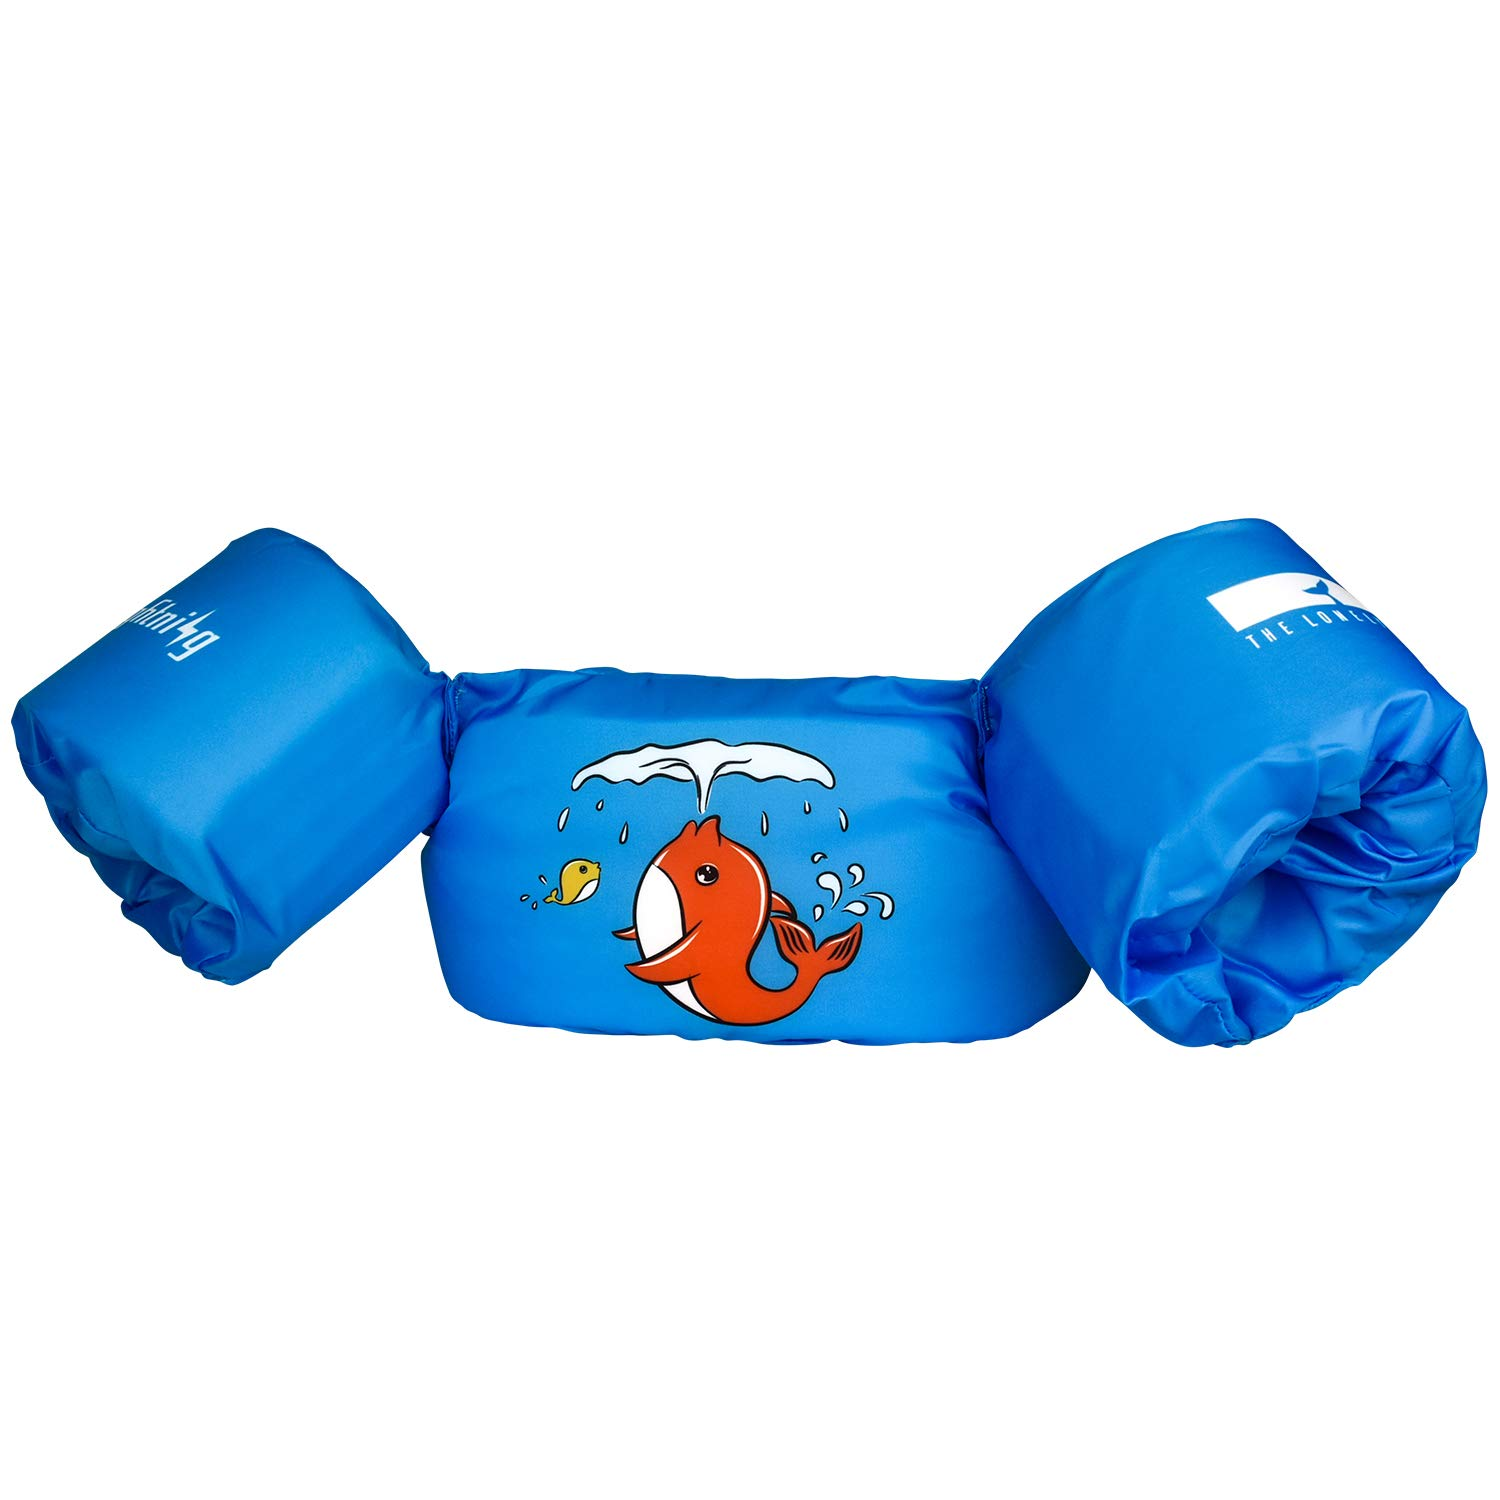 Mermaid Princess for Pool//Puddle//Sea Beach Playing and Jumpers Floatie up to 50 lbs dark lightning Kids Life Jacket 30-50 Pounds for Girls Babies//Toddles